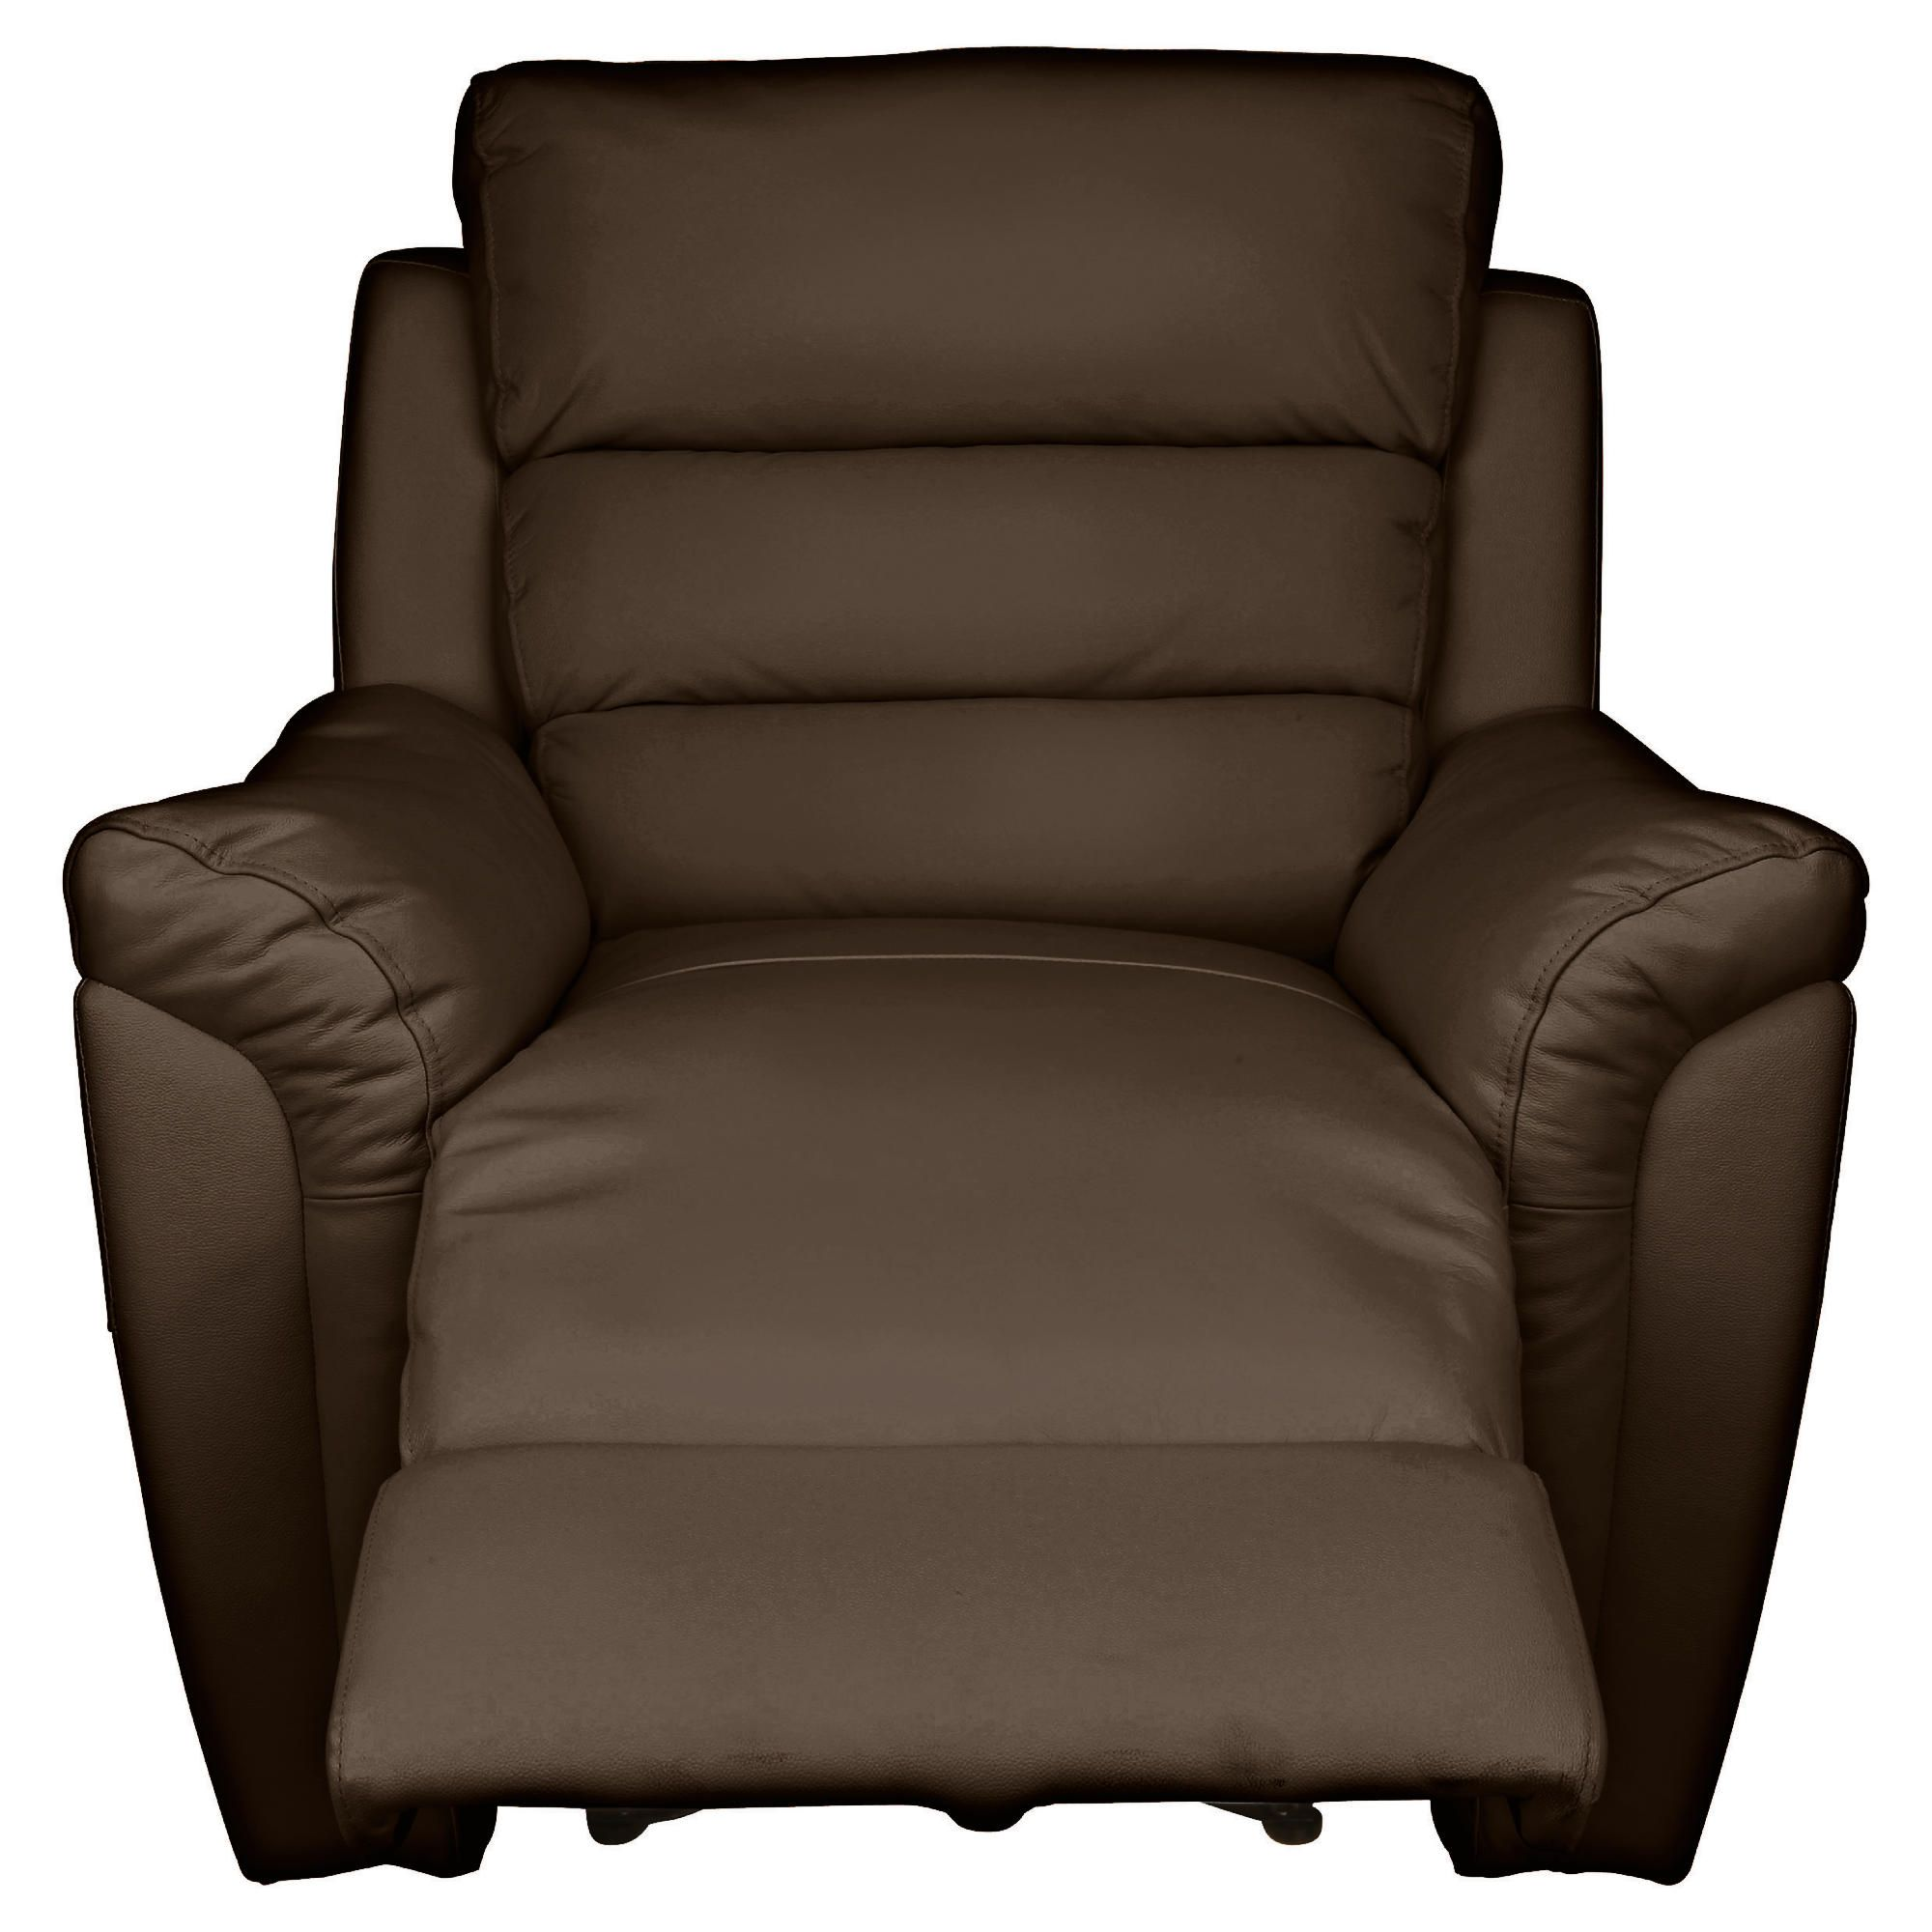 Chloe Recliner Chair Leather, Brown at Tesco Direct